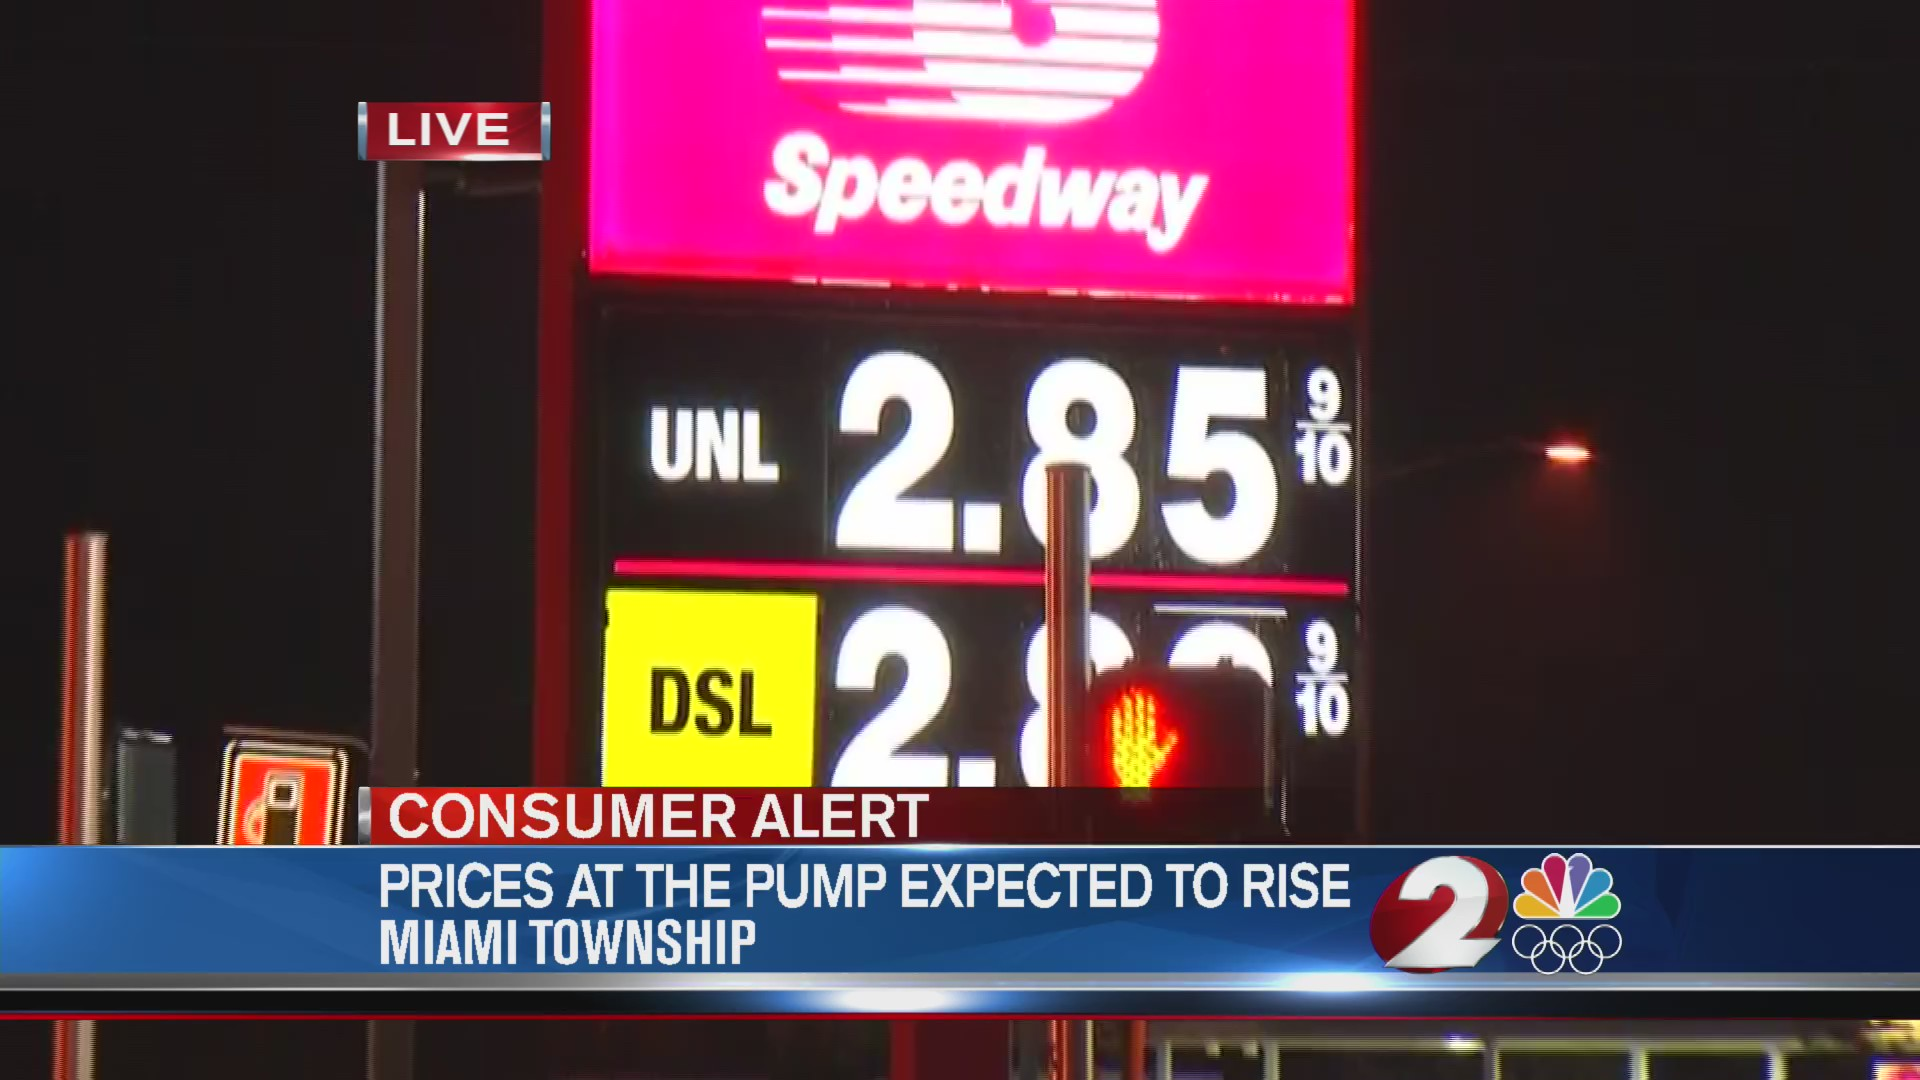 Speedway Gas Prices Near Me >> Local Gas Prices Rising After Attack On Major Oil Supplier